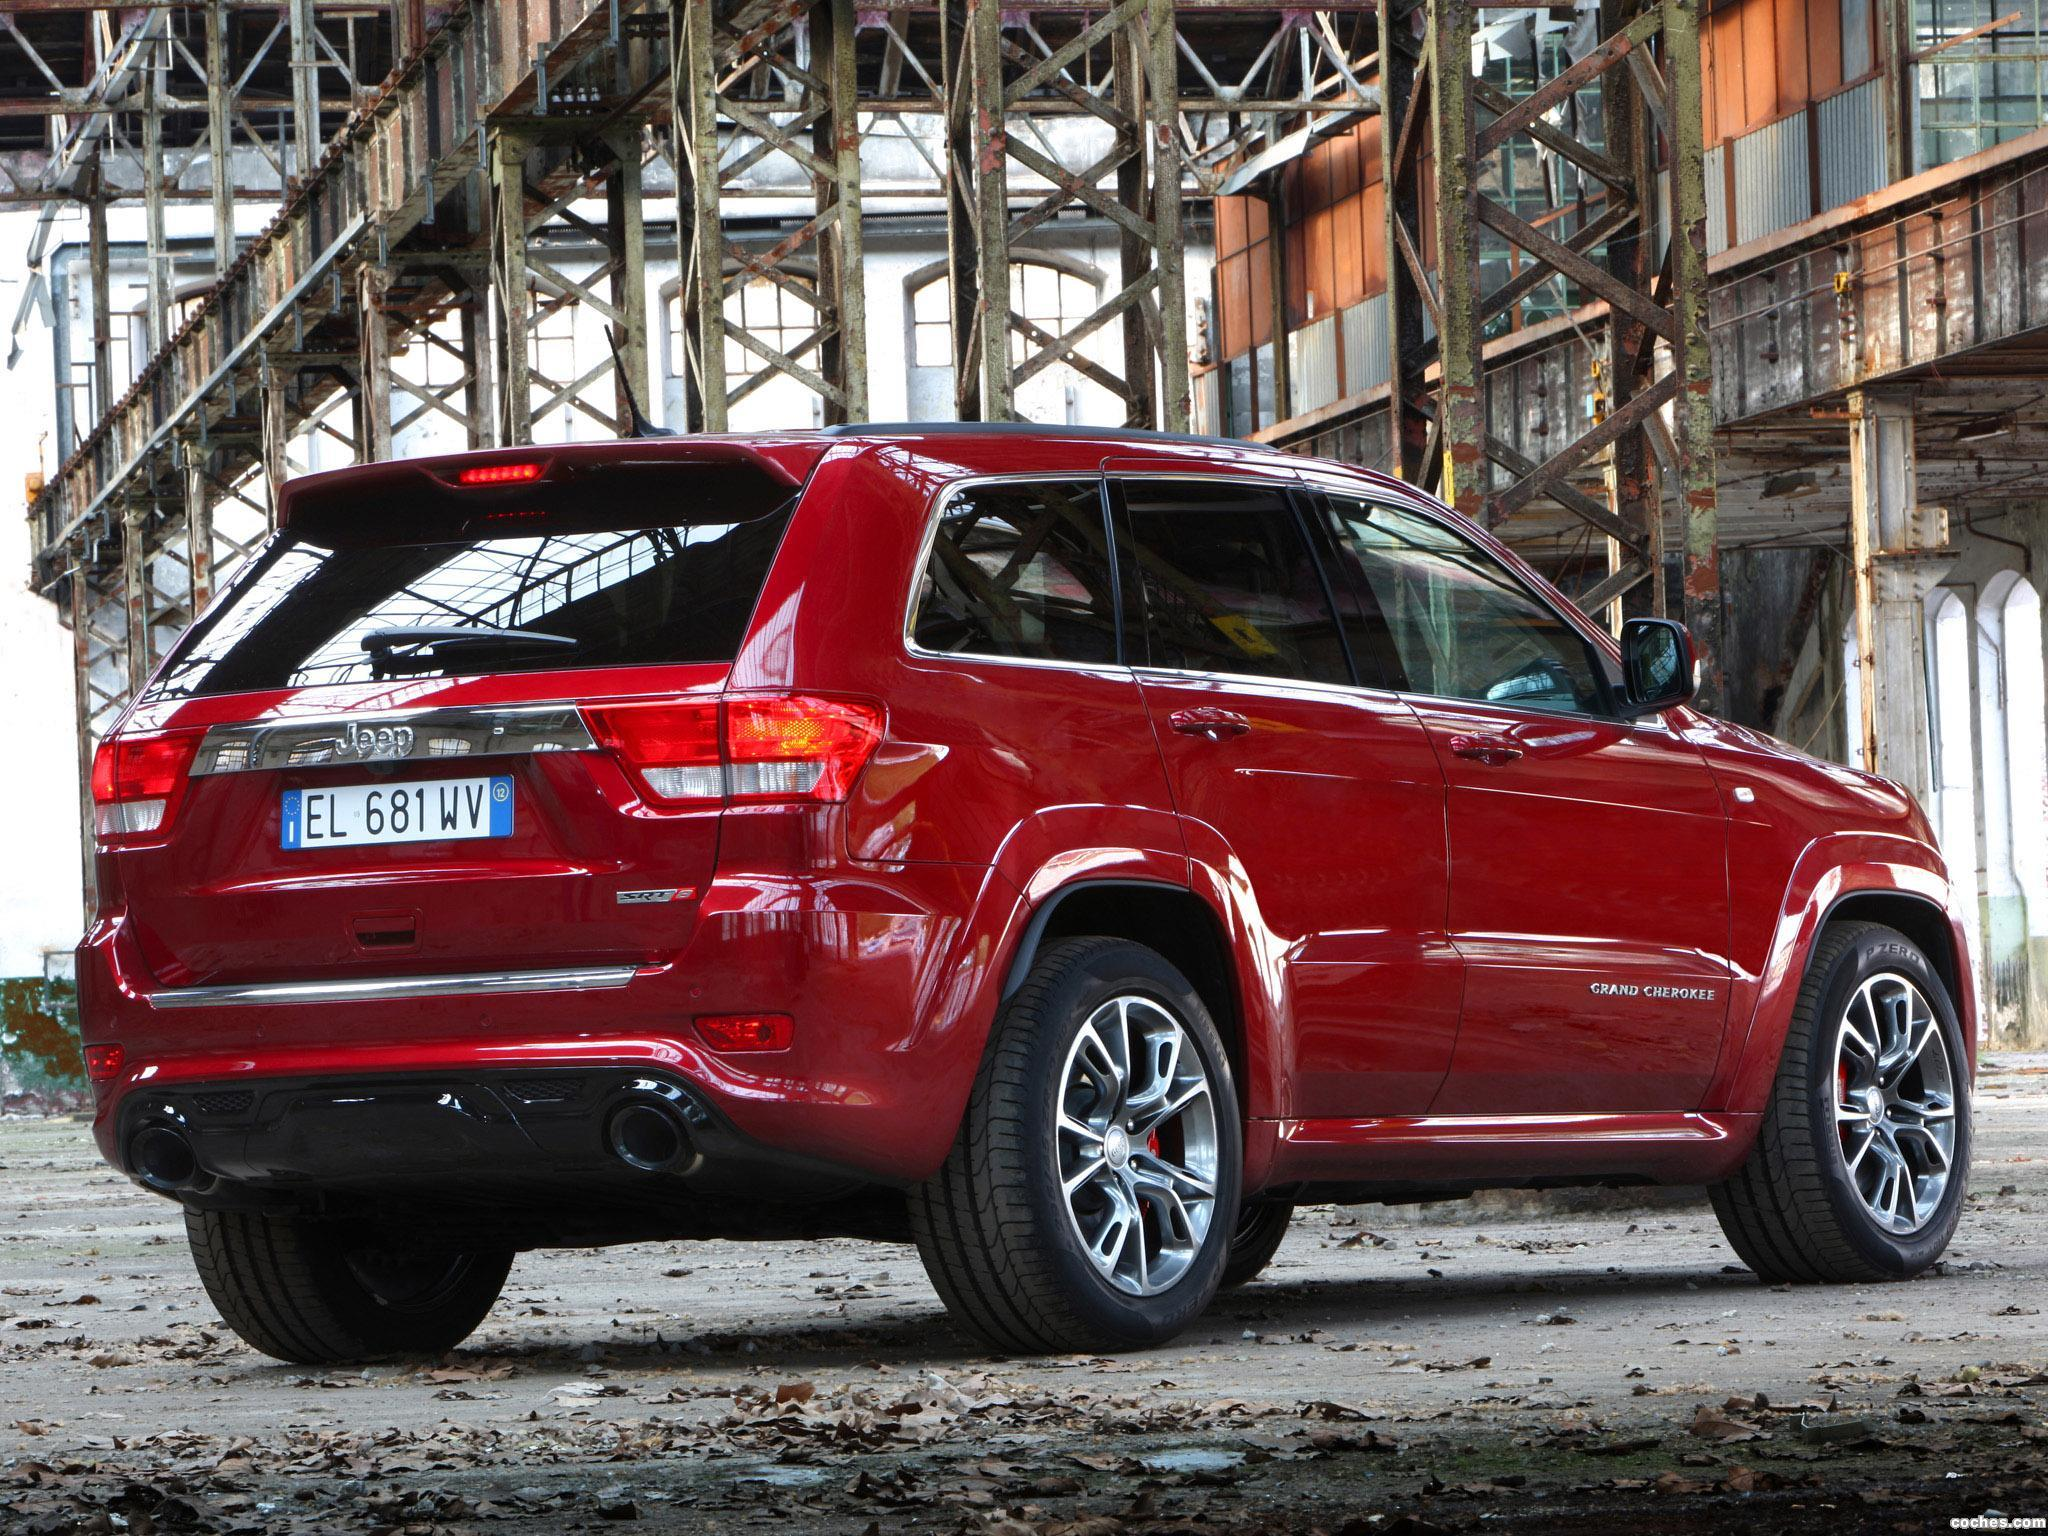 Foto 1 de Jeep Grand Cherokee SRT8 Europe 2012